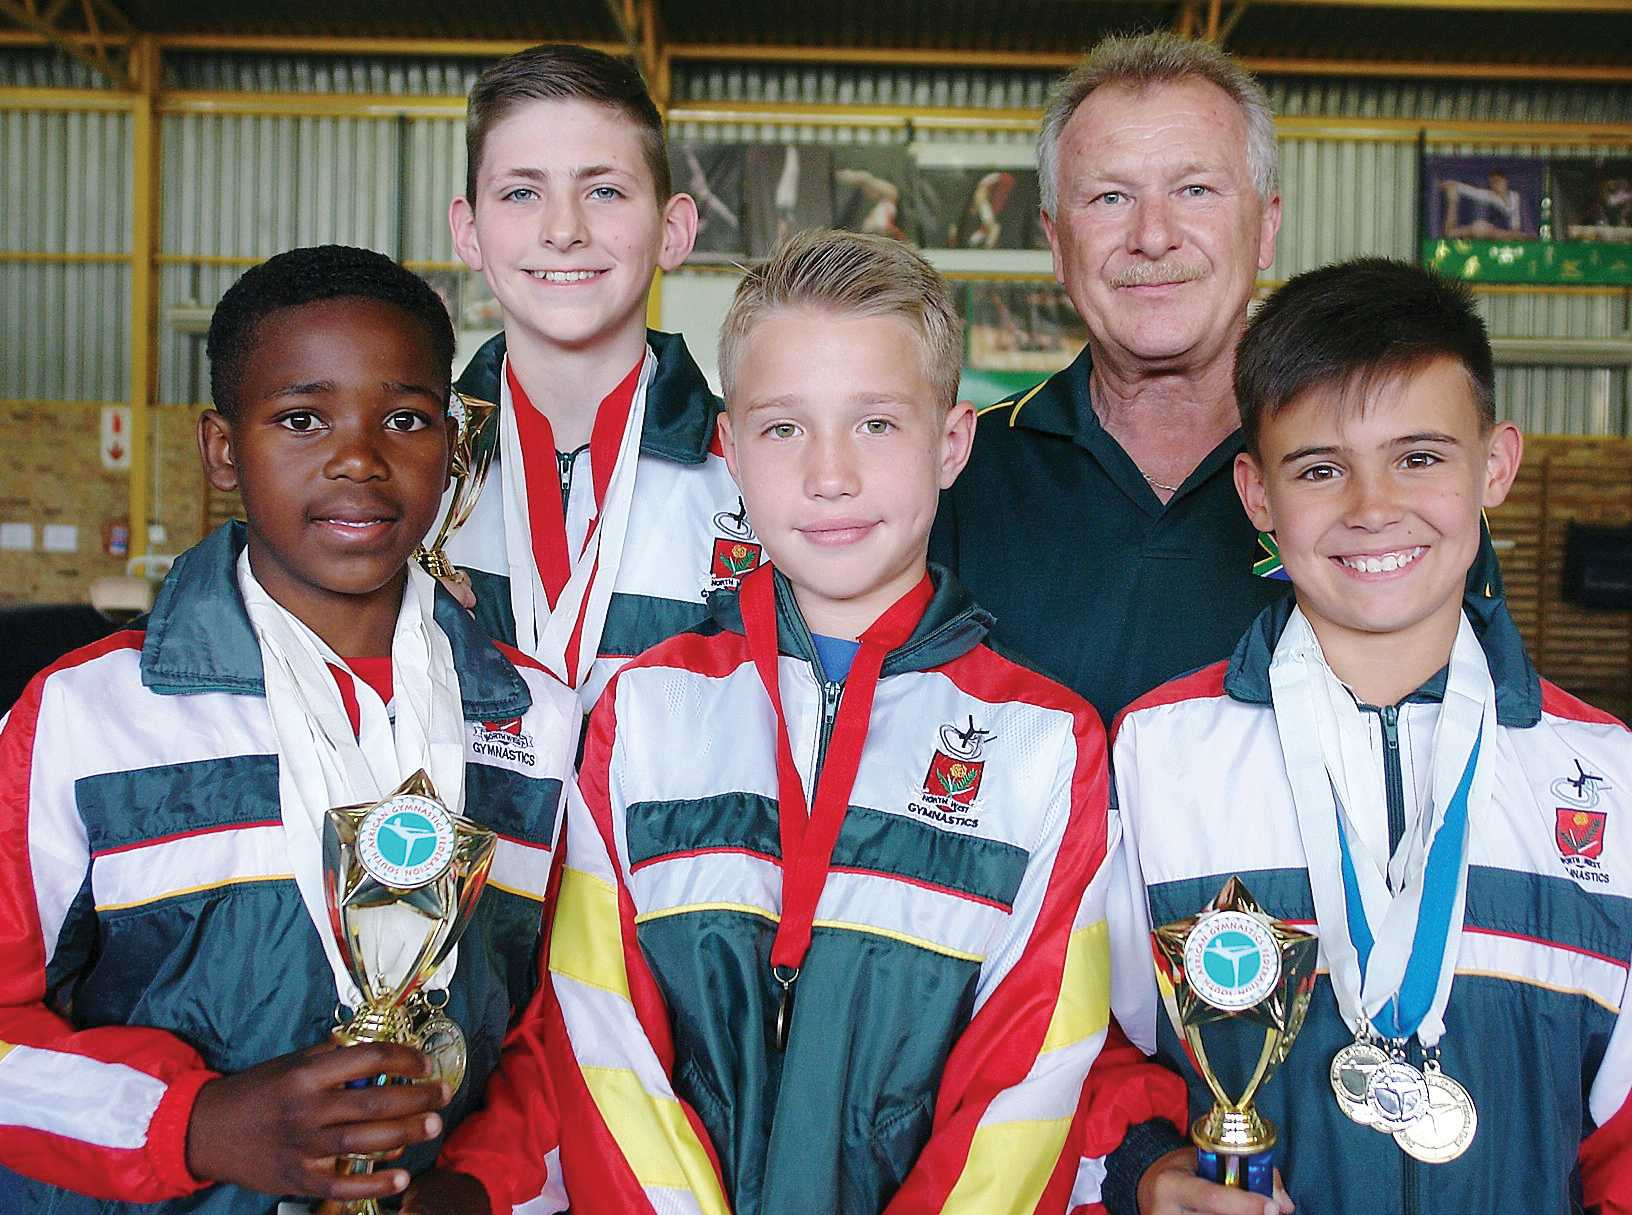 These boys, trained by Oleg Vizer (back, right), shined at the recent National Gym Games in Pretoria. In the front row are Bhula Ngcengeni (Level 7, first place overall, highest overall score, gold medals for all six apparatus), Ruben De Klerk (Class 1, High performance, fifth place overall, one bronze medal), Stephan Pelser (Level 5, first place overall, highest overall score, four gold medals and one silver) and back Keanan De Vries (Level 6, first place overall, highest overall score, one gold and one bronze medal).